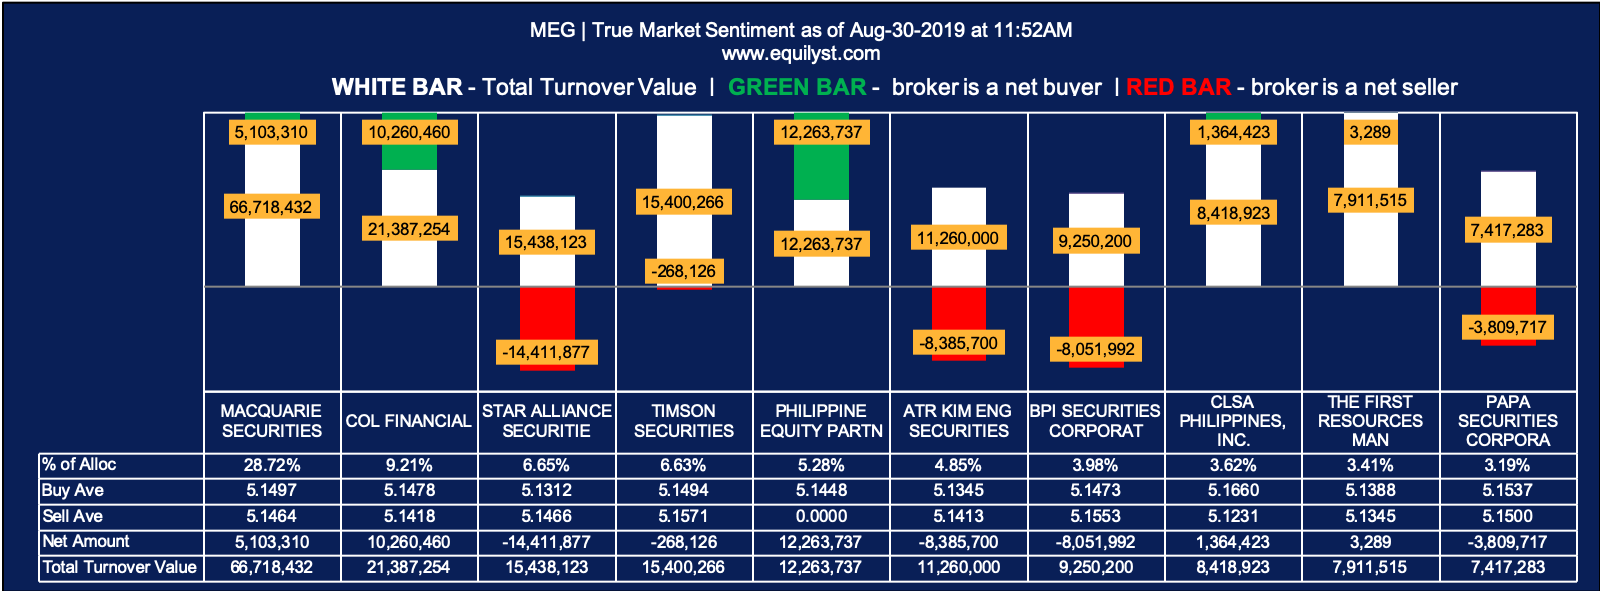 Megaworld Corporation (MEG) - True Market Sentiment 1 - 8.30.2019